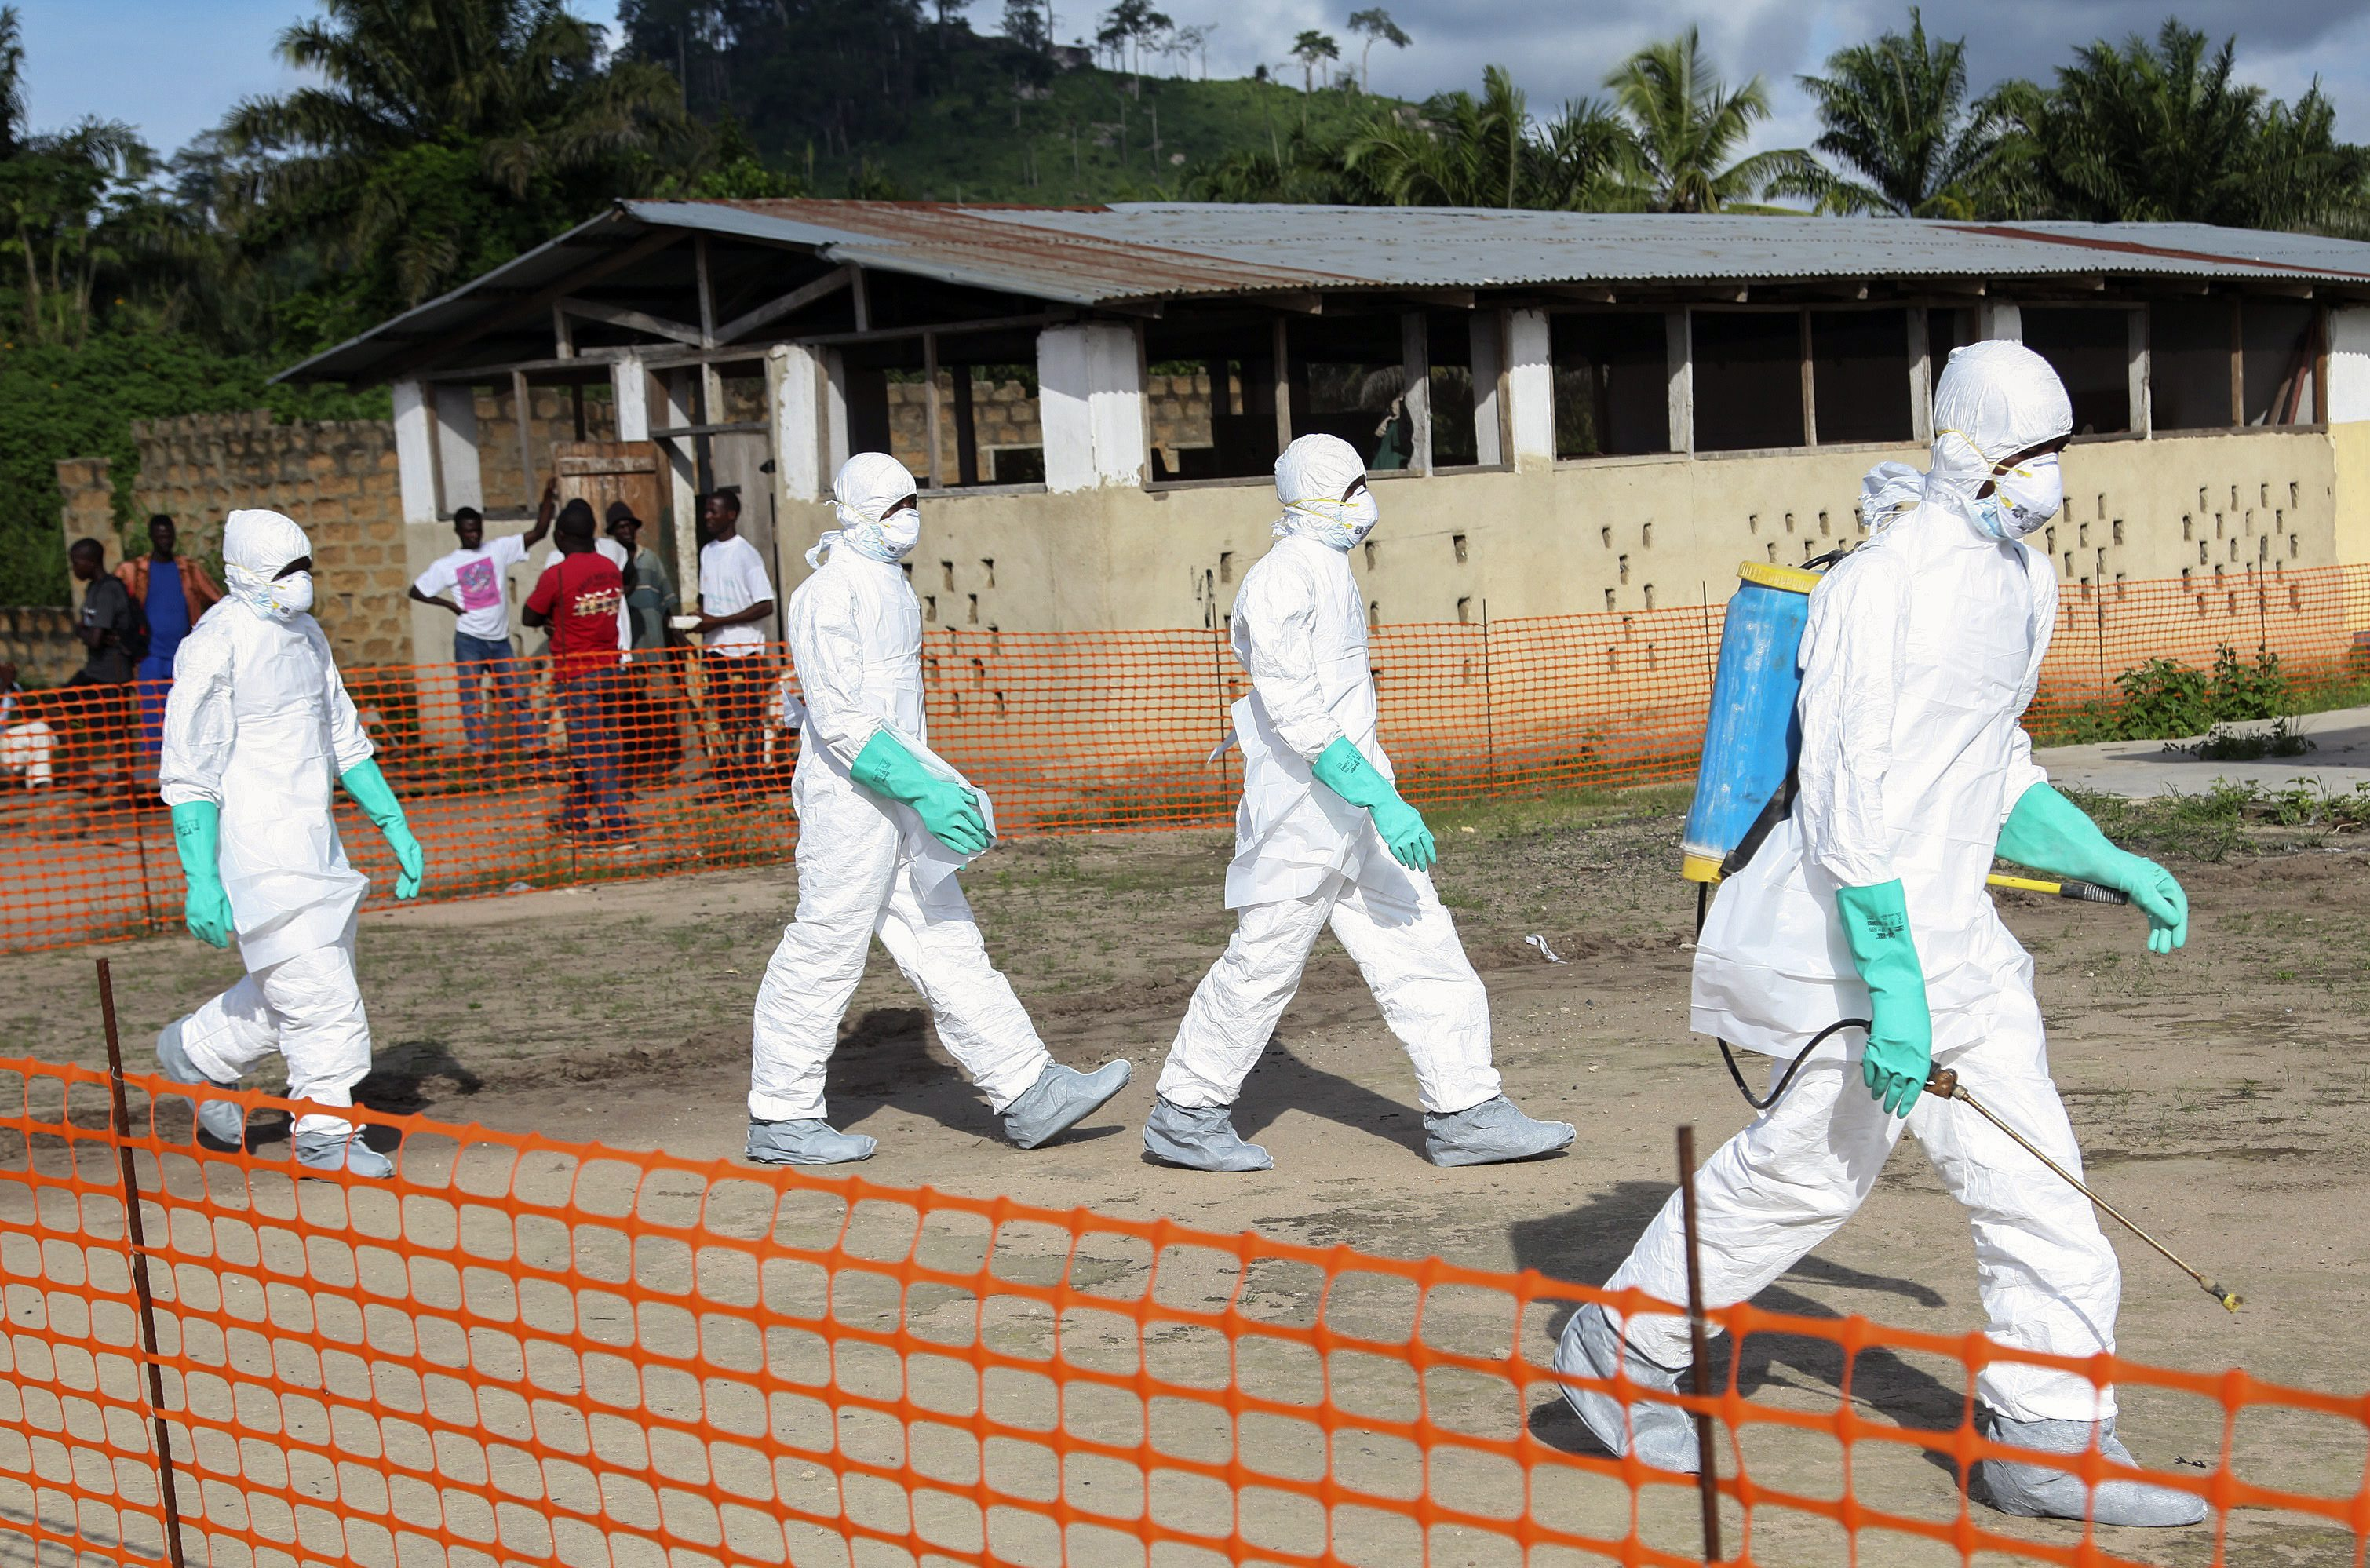 epa04332724 A photograph made available 27 July 2014 shows Liberian health workers in protective gear on the way to bury a woman who died of the Ebola virus from the isolation unit in Foya, Lofa County, Liberia, 02 July